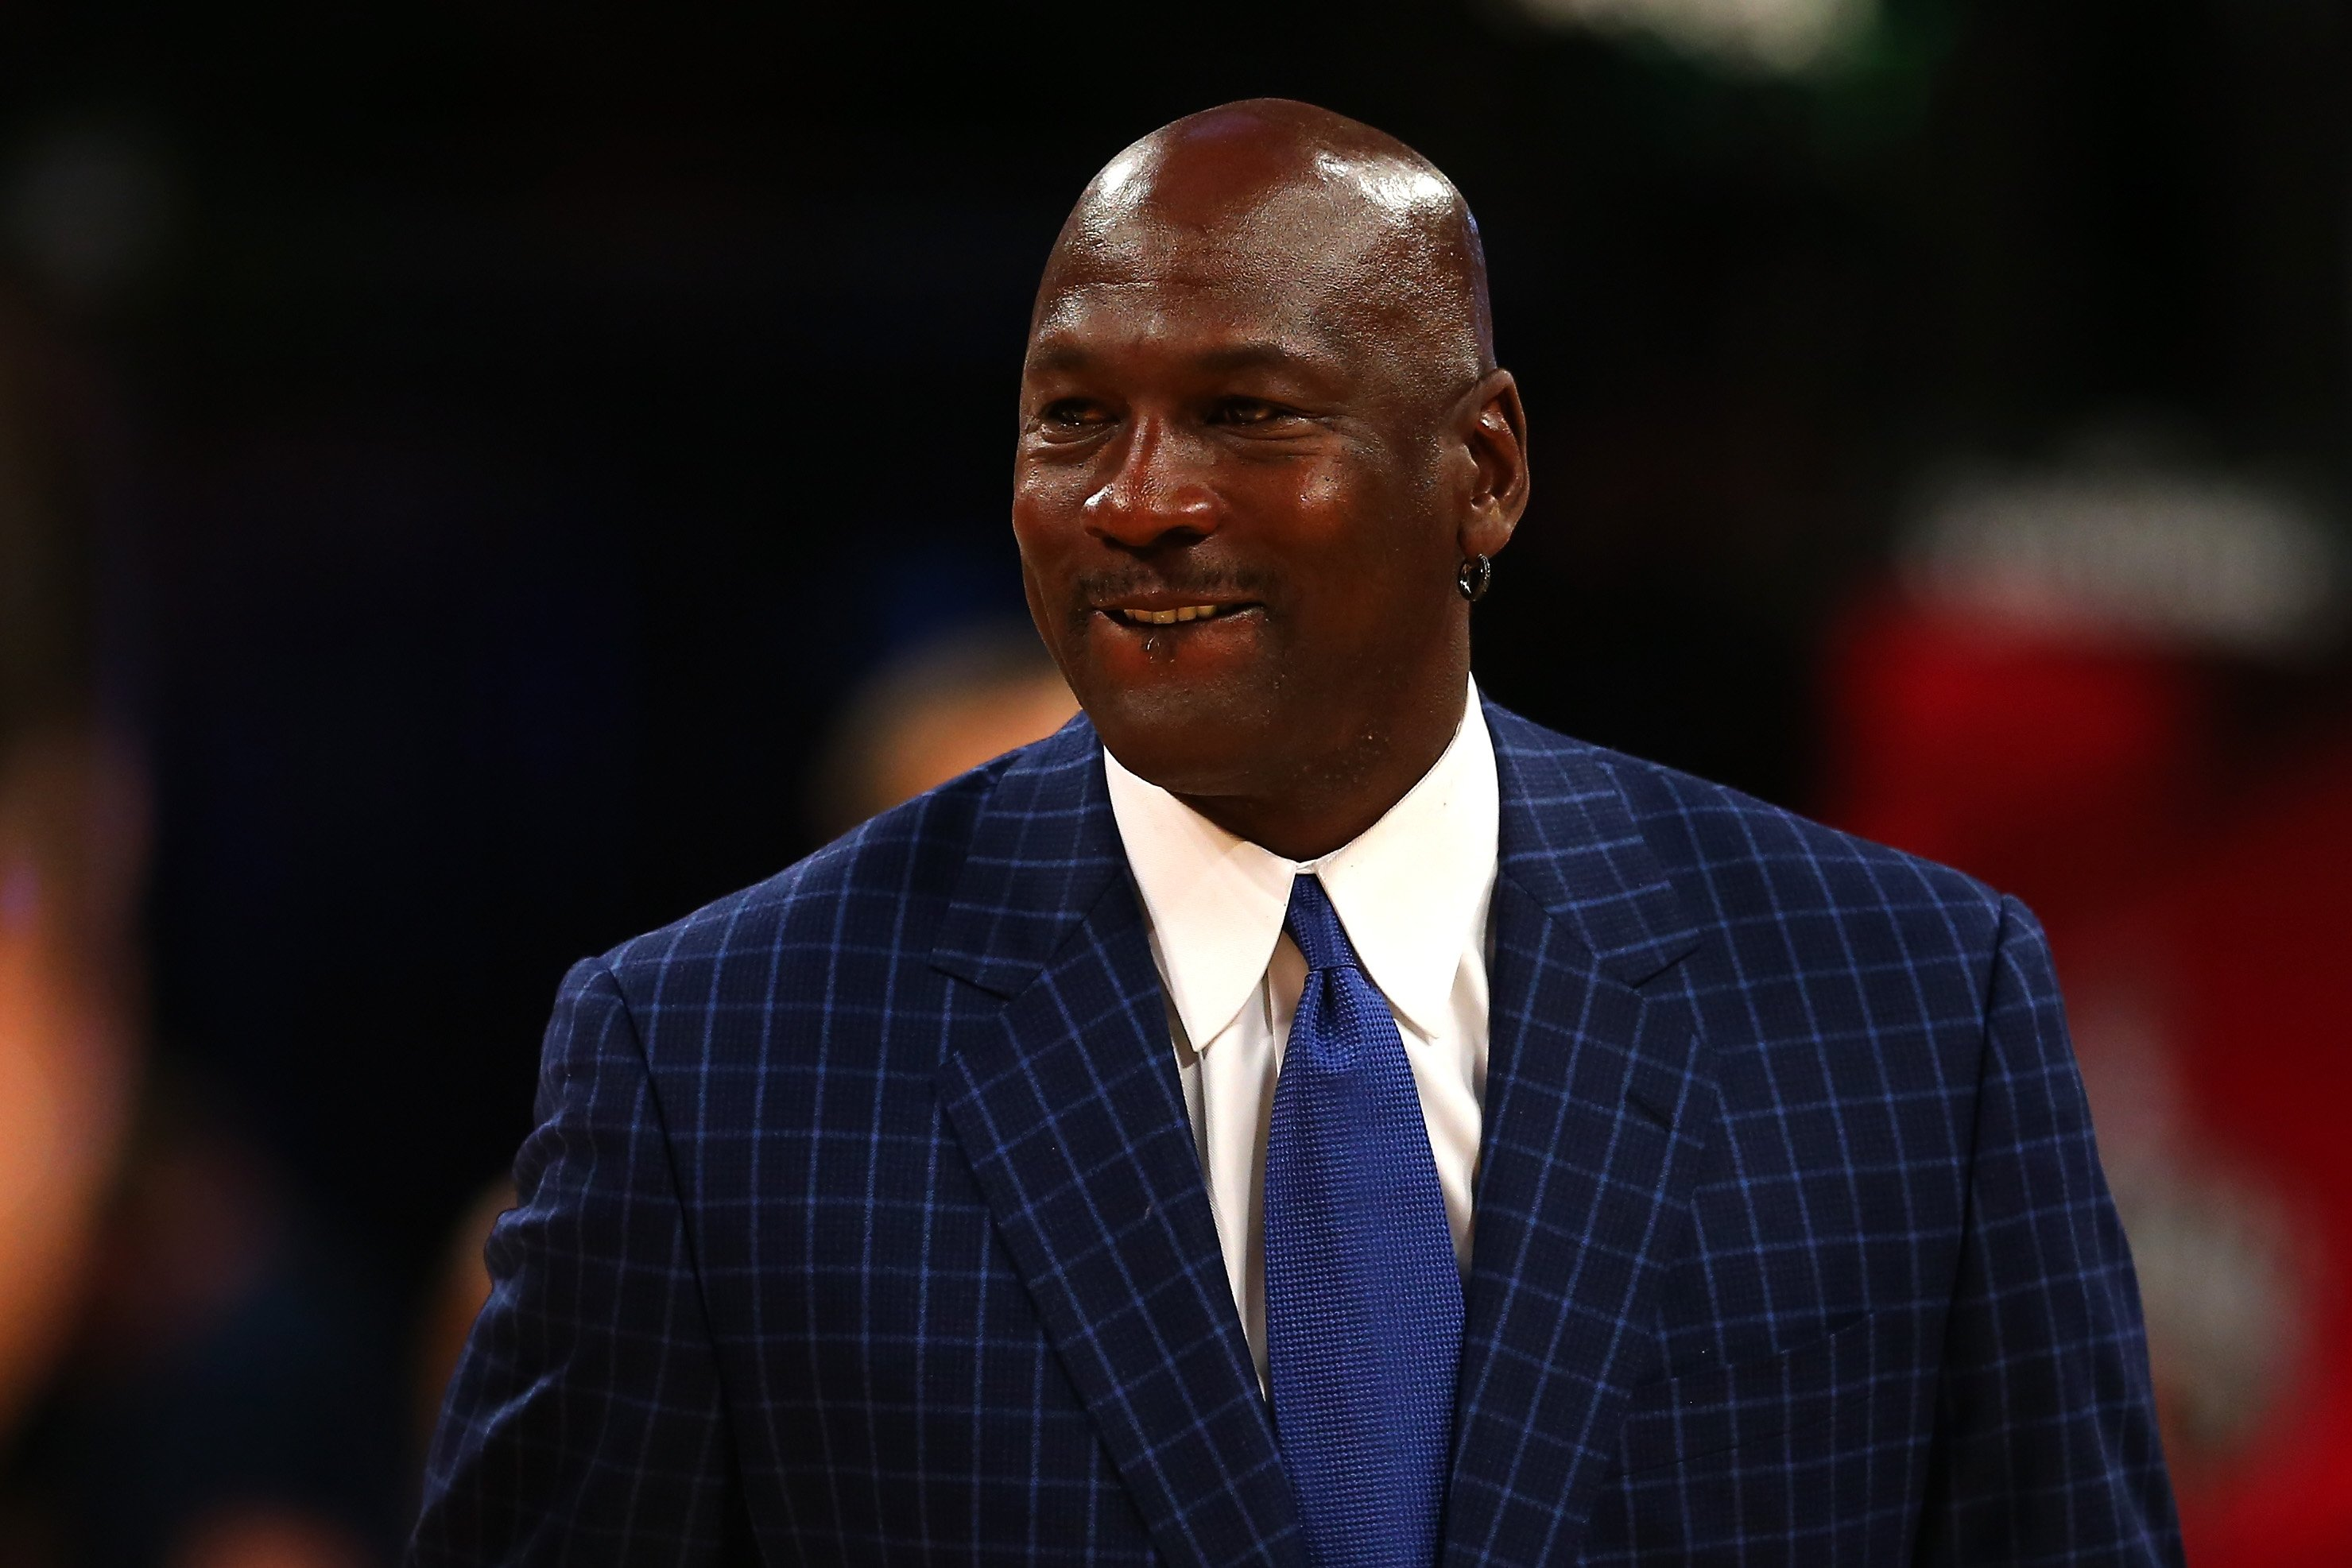 Michael Jordan attending an NBA All-Star Game in 2016. | Photo: Getty Images